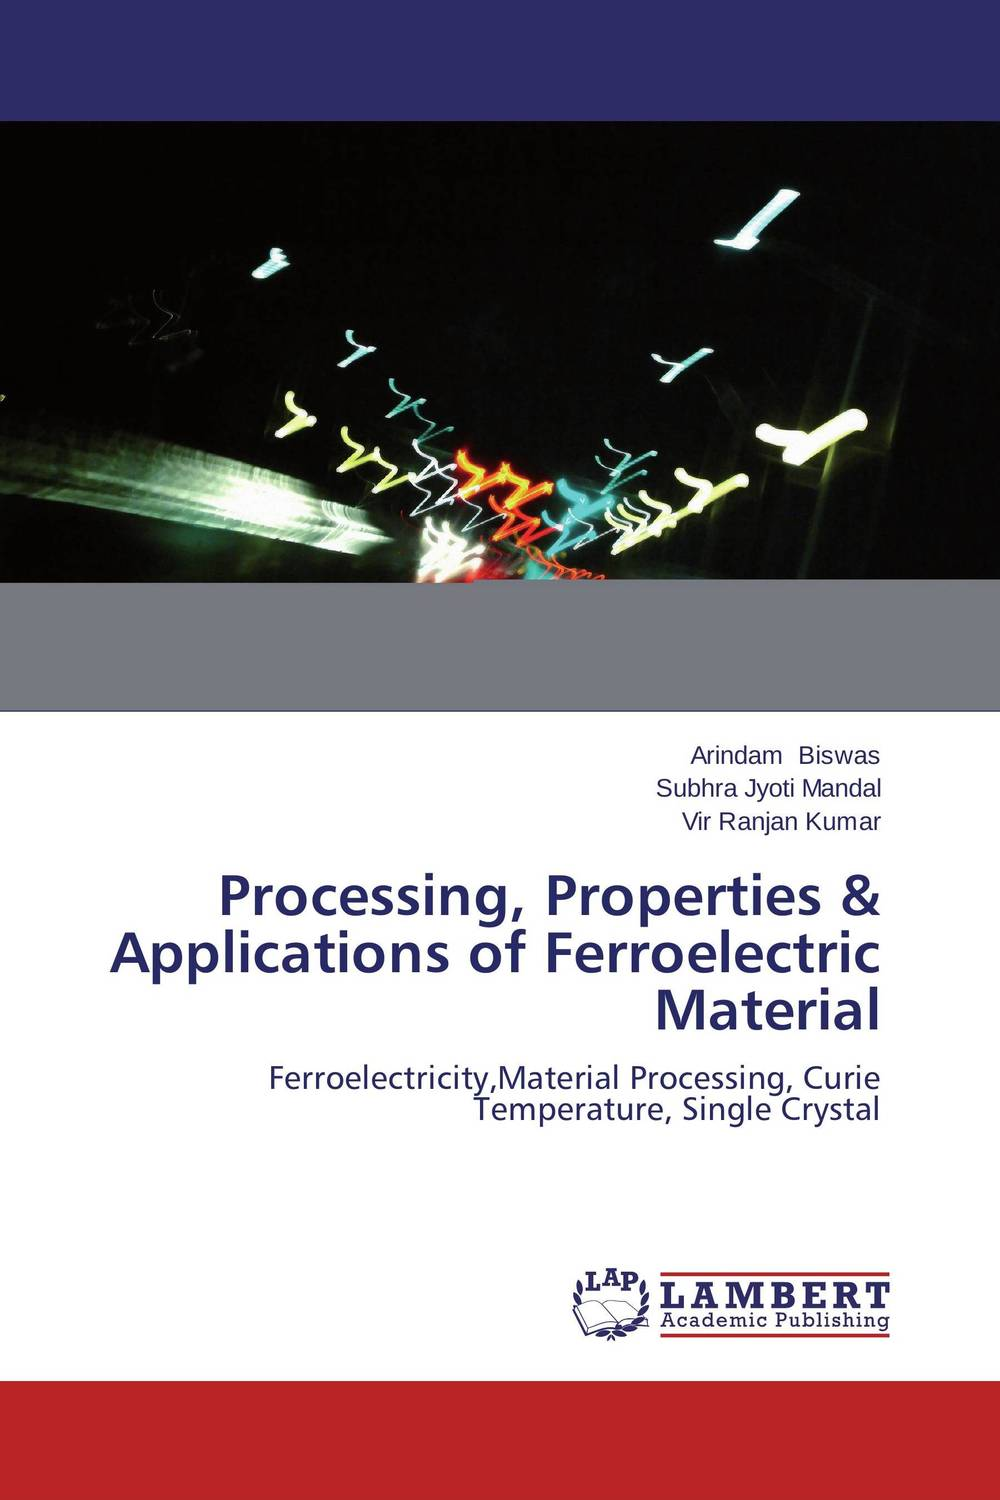 Processing, Properties & Applications of Ferroelectric Material enzyme applications in textile processing & finishing